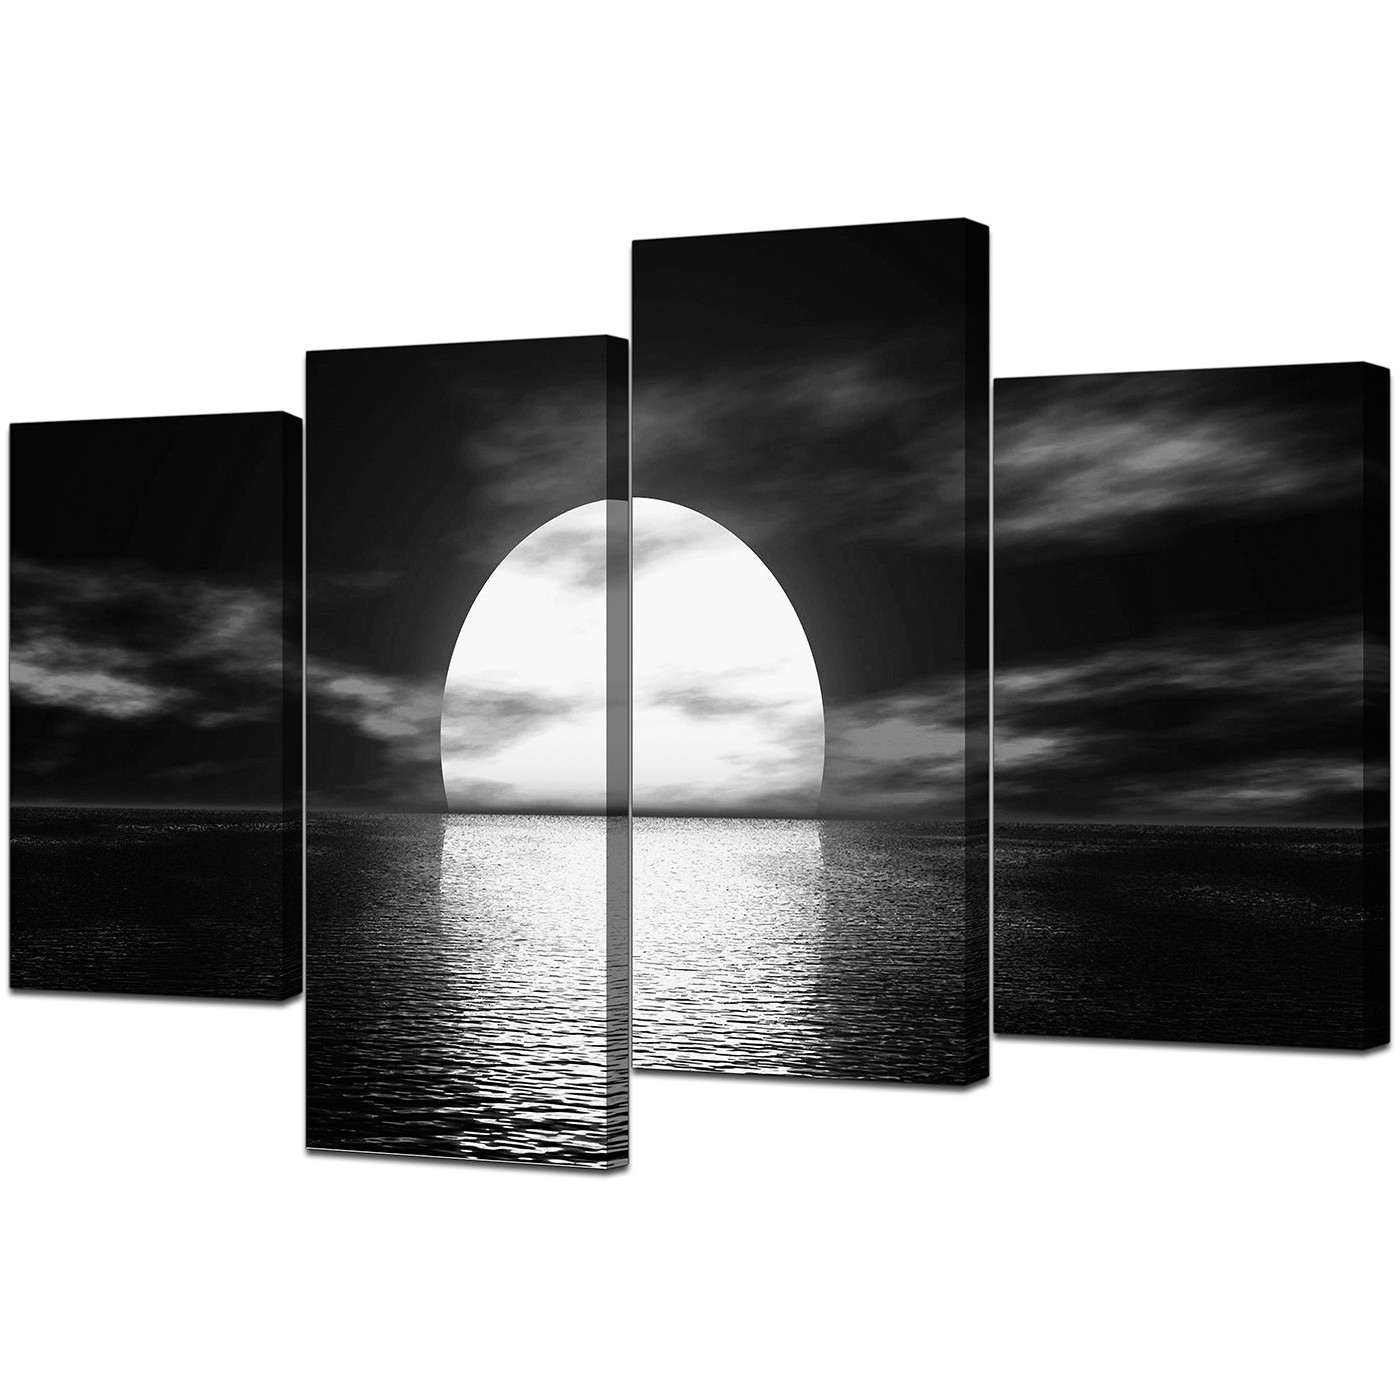 Large Framed Canvas Wall Art With Fashionable Black And White Canvas – Ocean Sunset Canvas Wall Art (View 9 of 15)